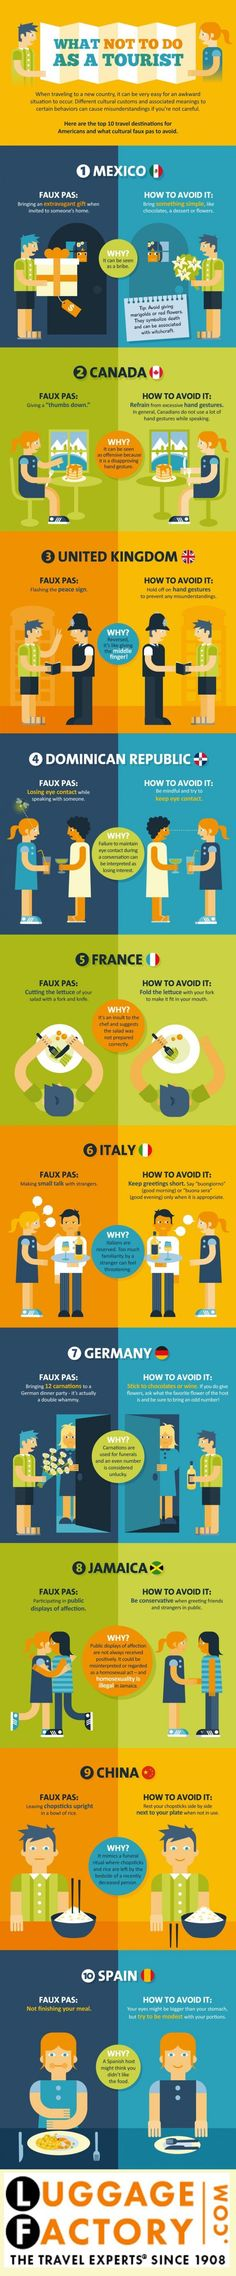 What Not To Do As A Tourist #travelinfographic